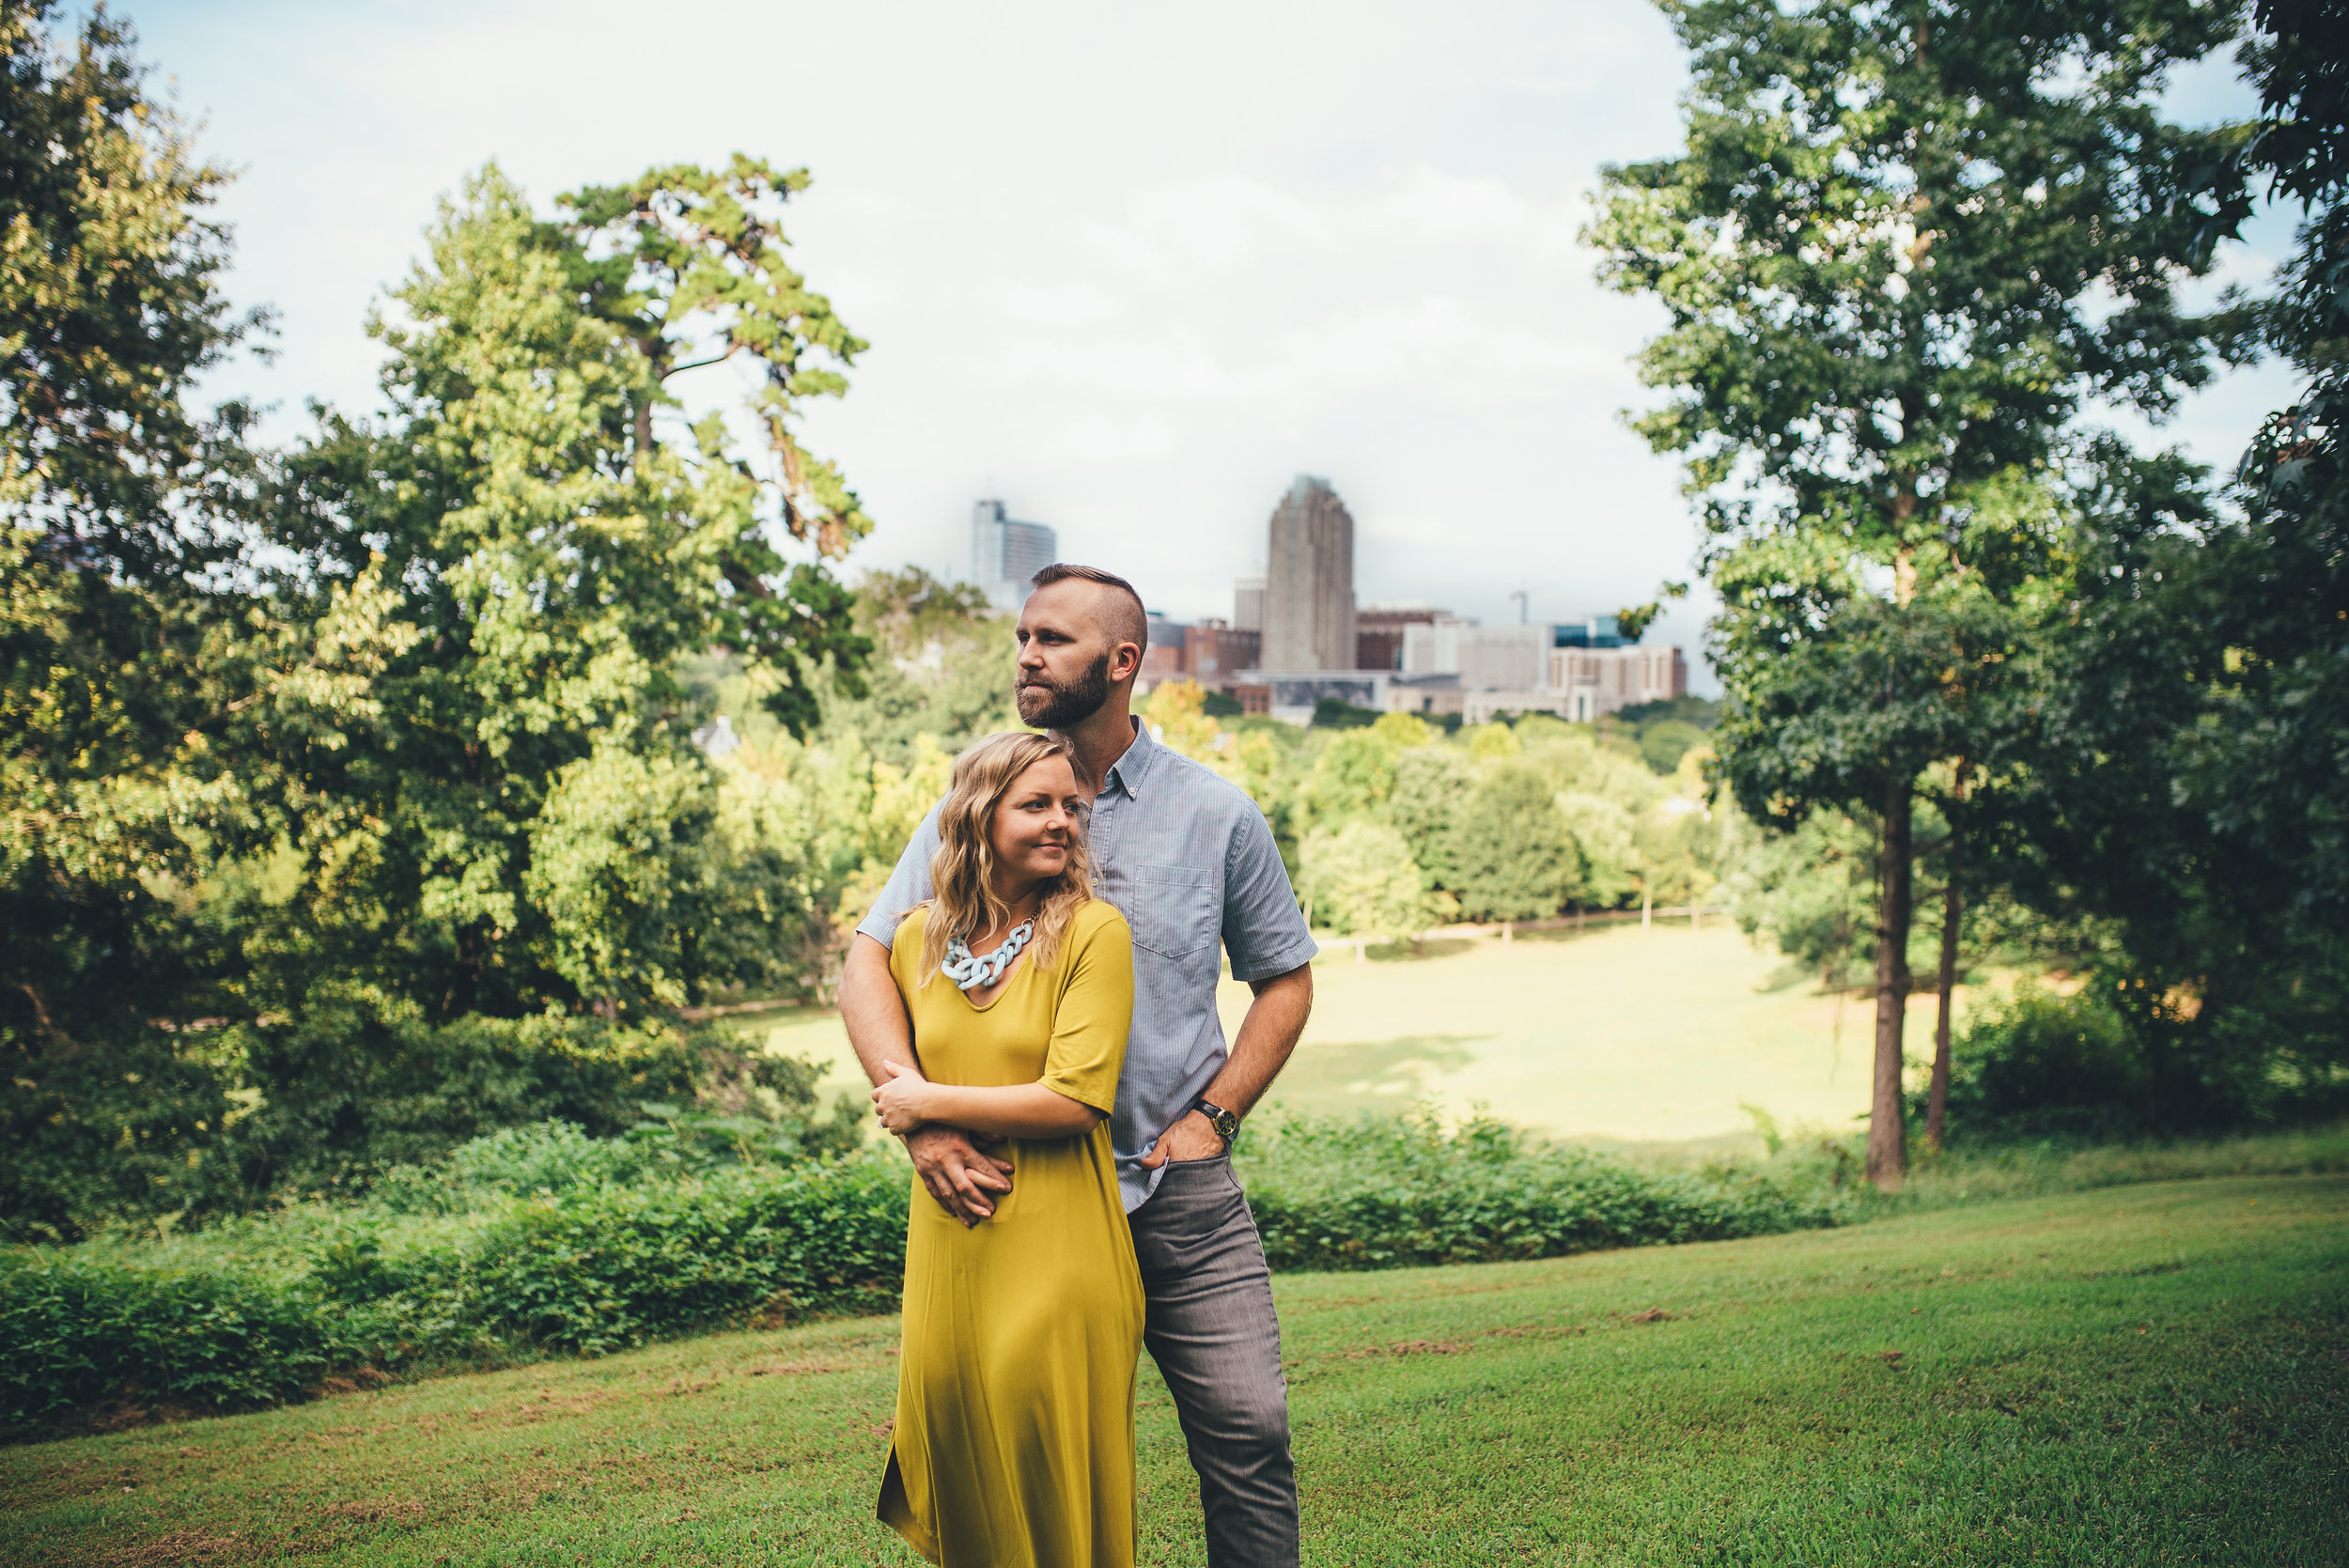 dorothea dix engagement session - raleigh wedding photographer - north carolina wedding photographer